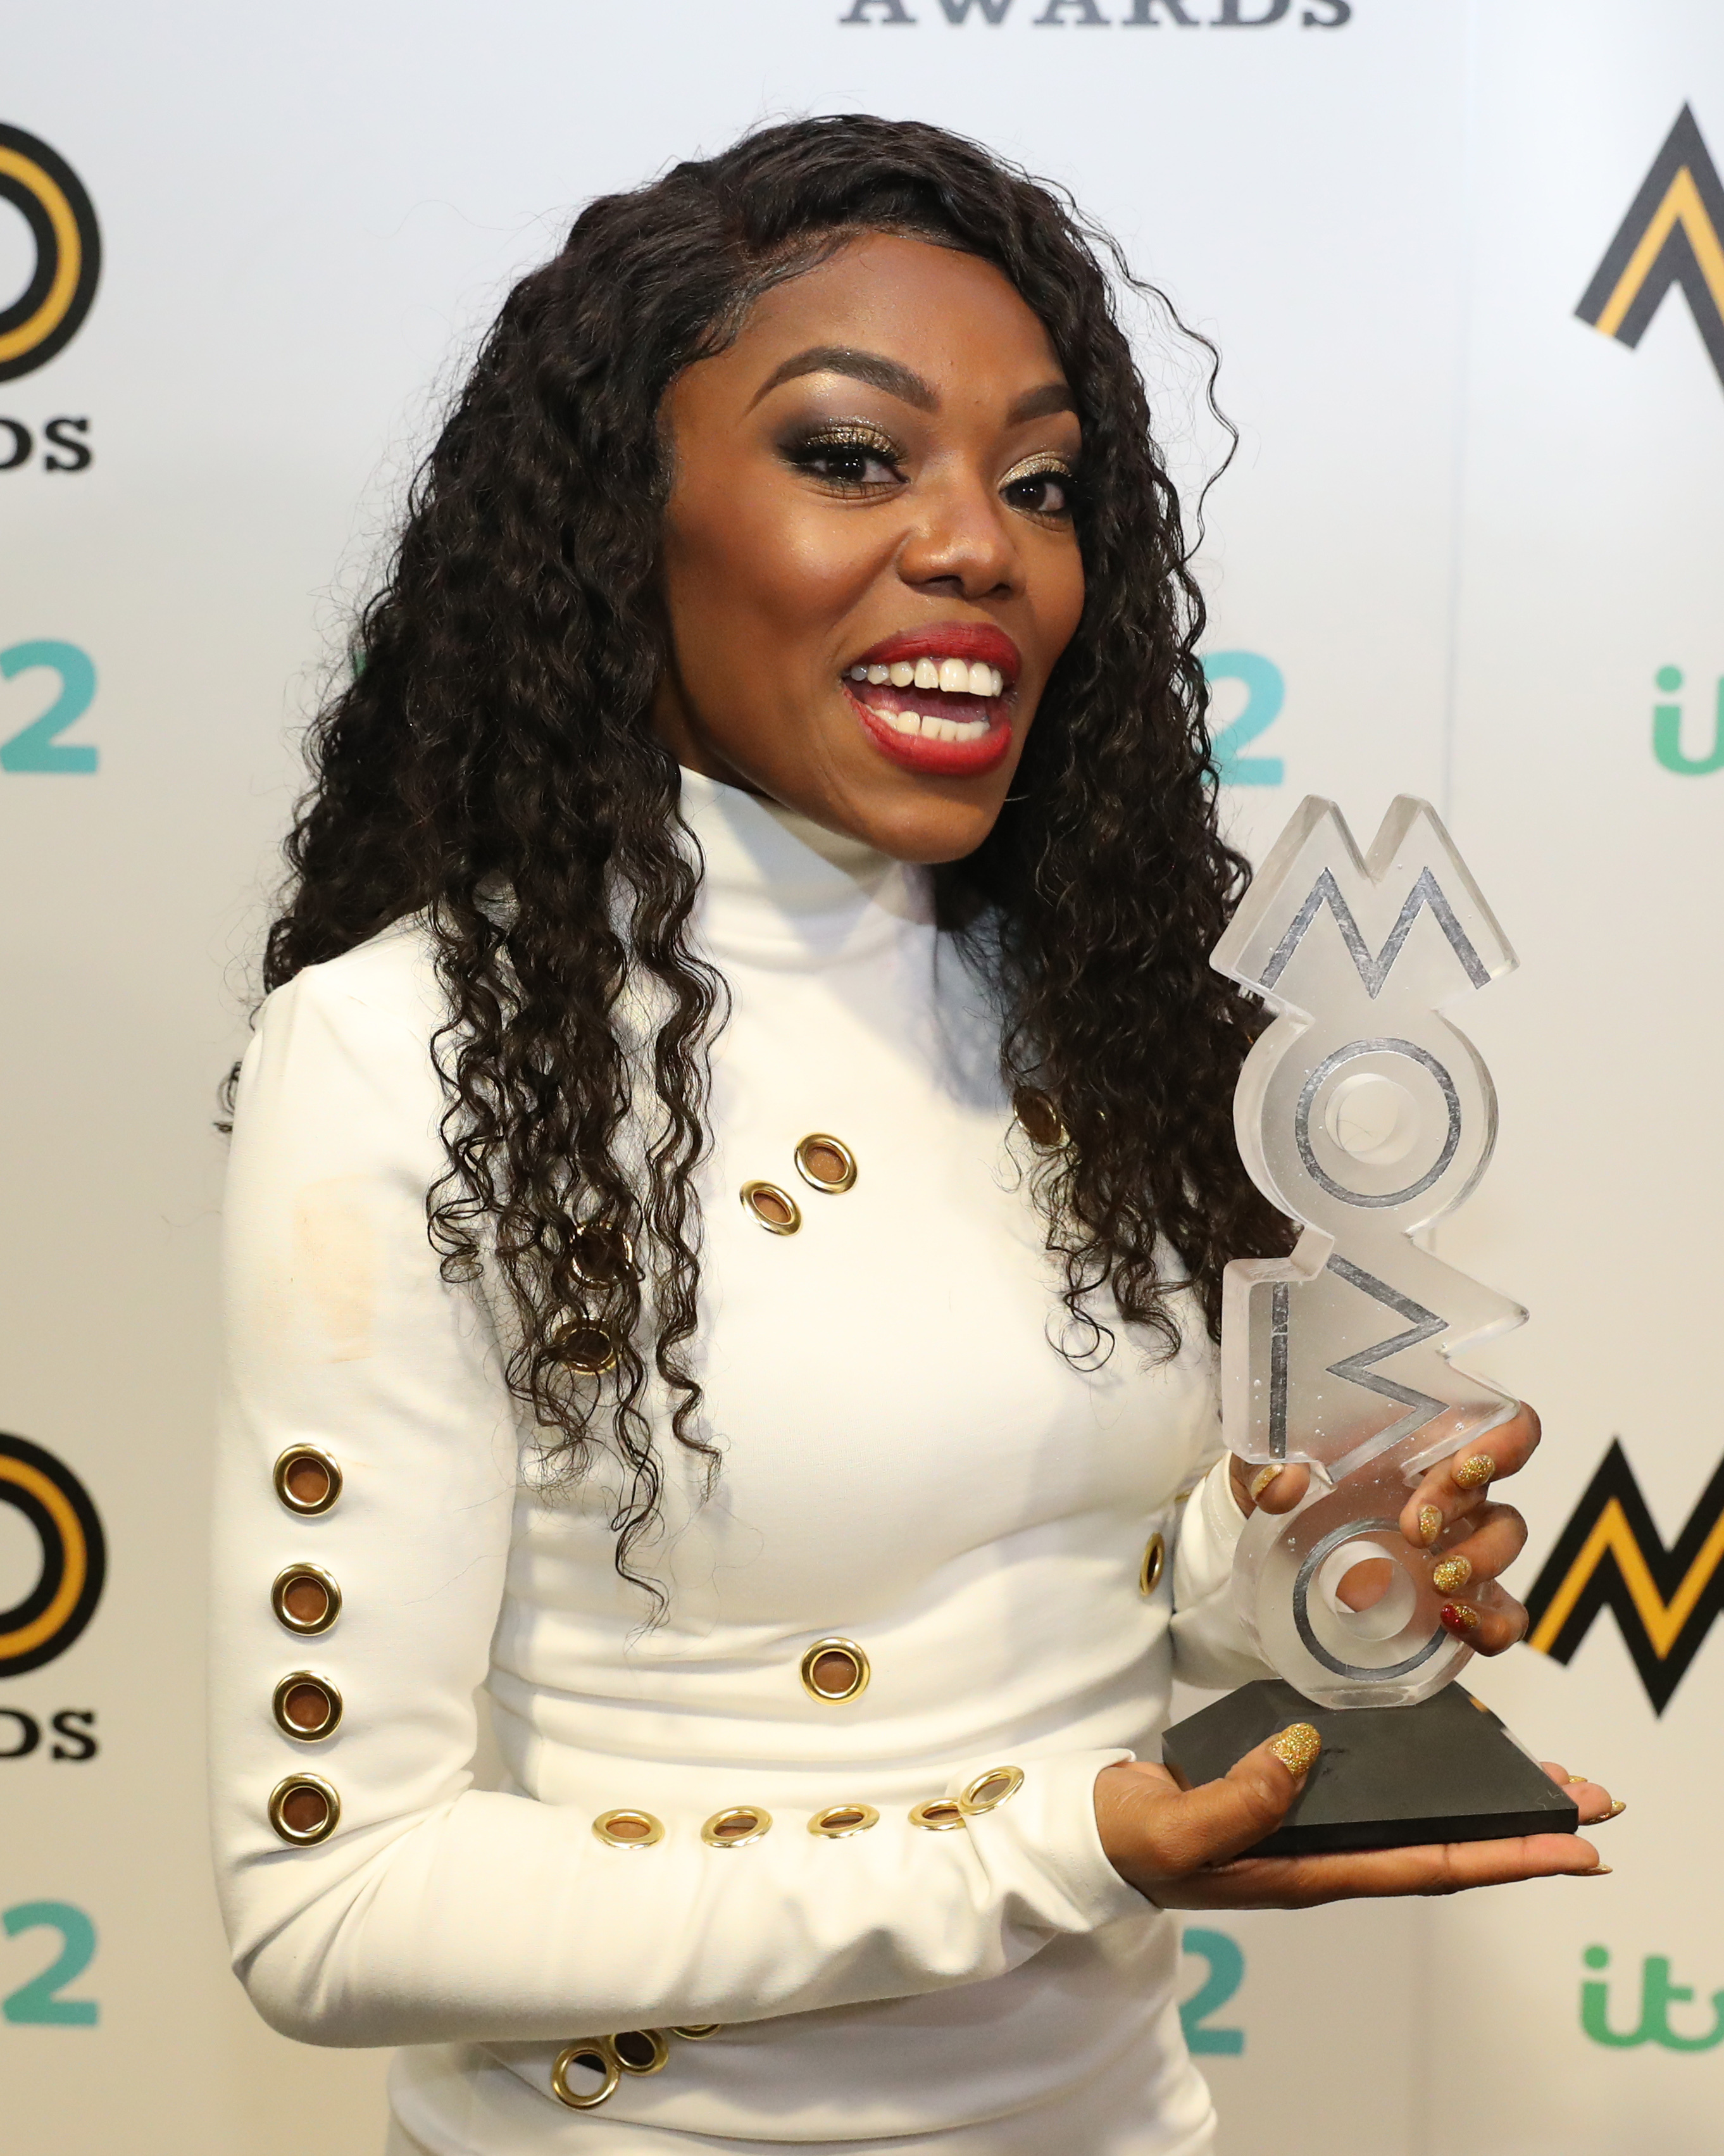 Lady Leshurr won best female act at the 2016 Mobo Awards